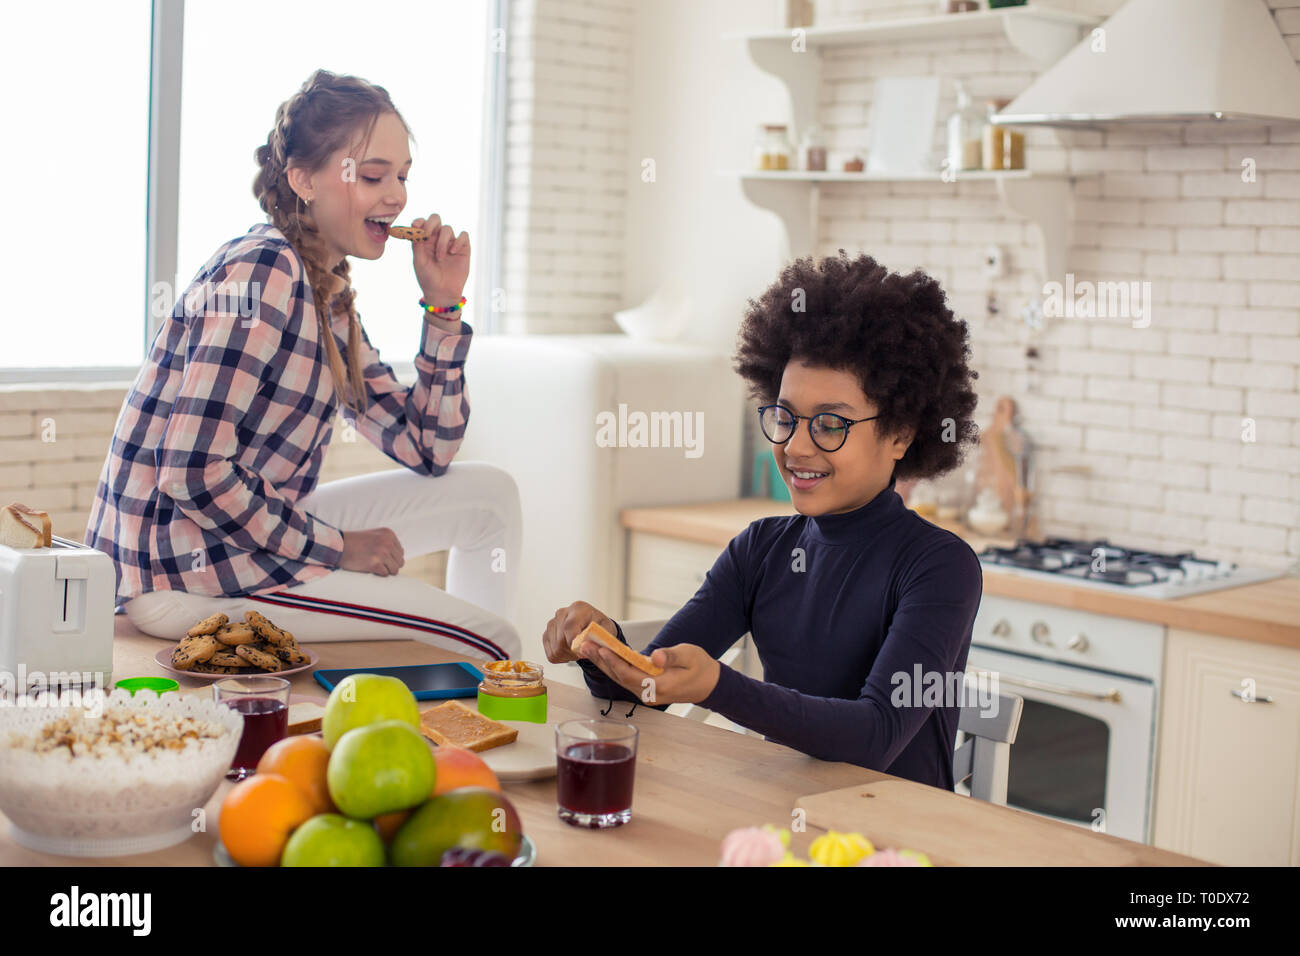 Kind brunette boy enjoying his cooking activity - Stock Image